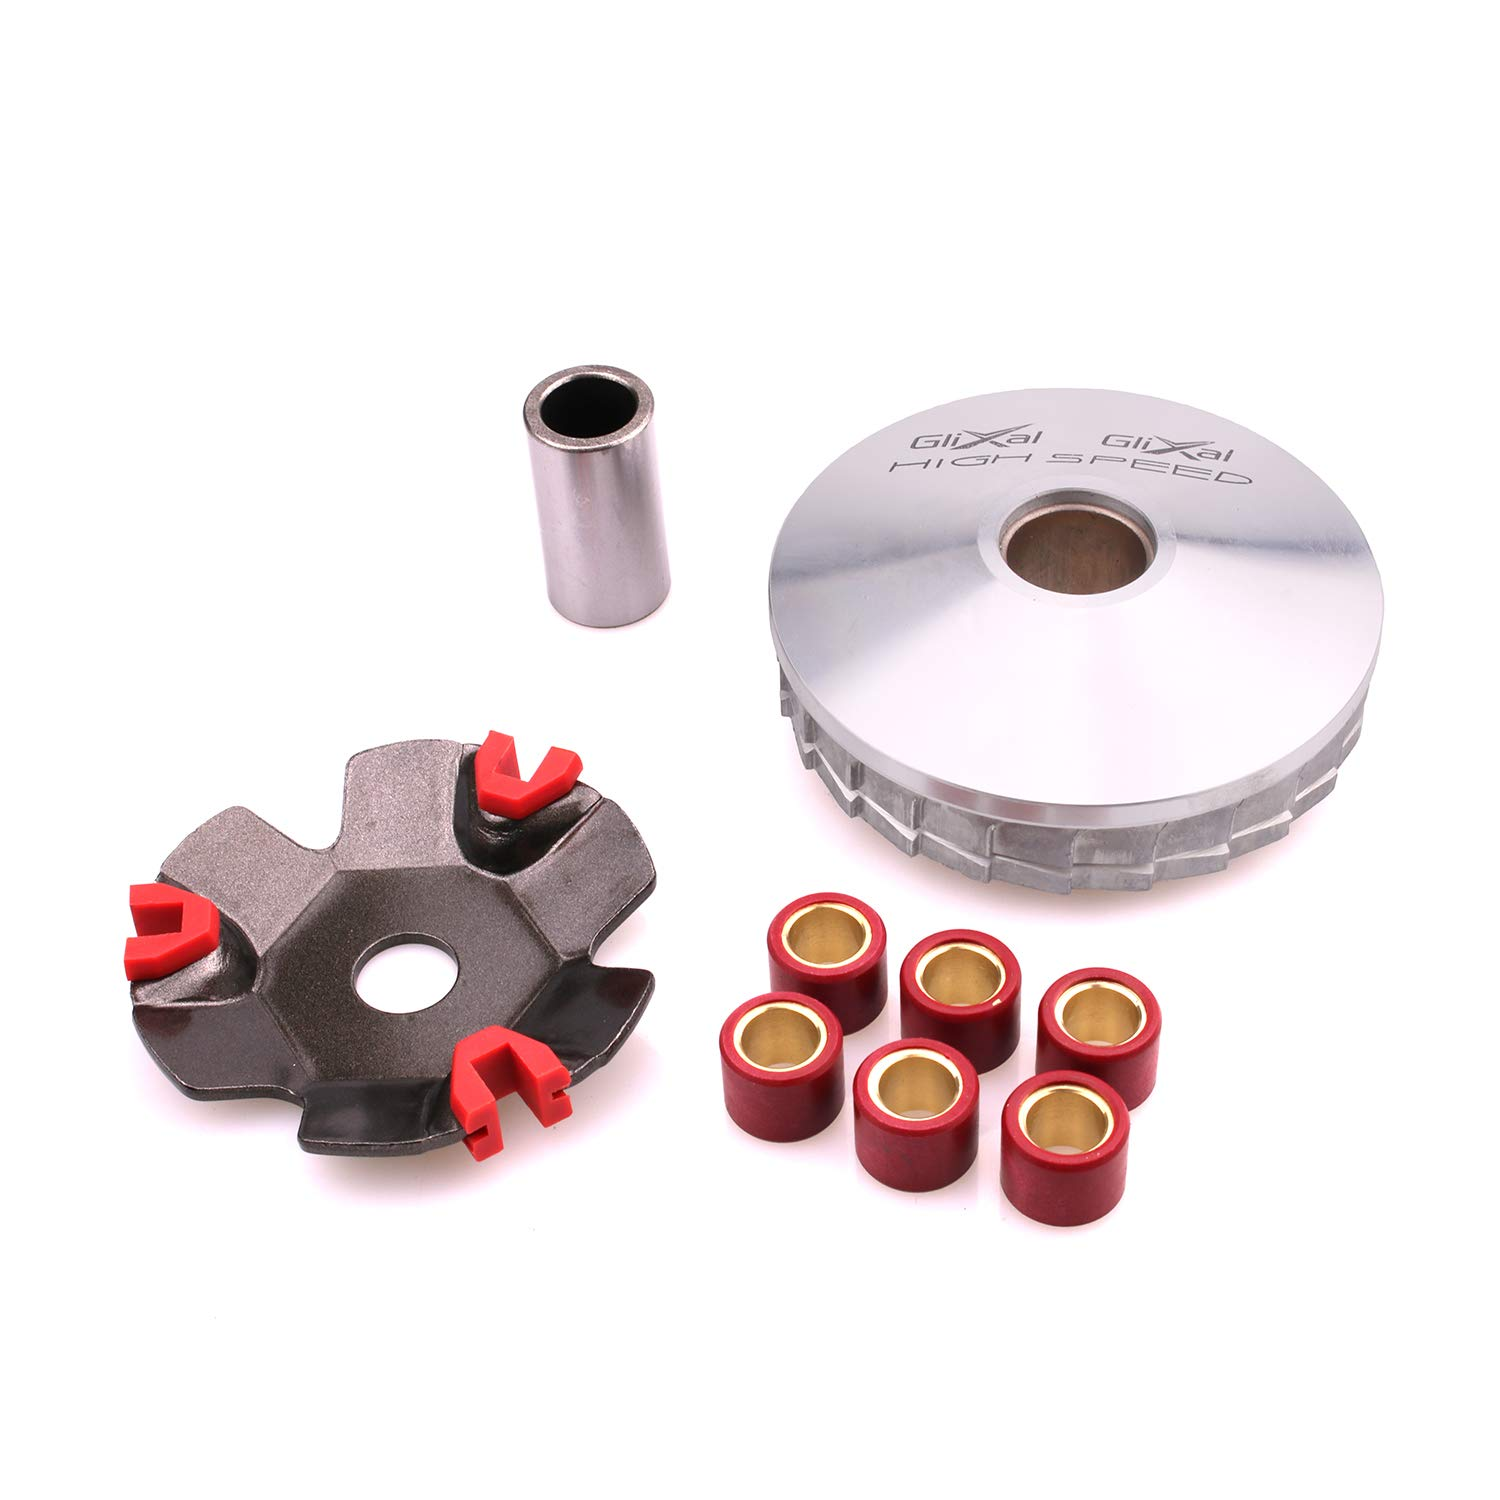 Glixal ATKS-041 High Performance Racing Variator Kit with 6.5 gram Roller Weights for Chinese Scooter Moped ATV 4-Stroke GY6 50cc 80cc 100cc 139QMB 139QMA Engine Front Clutch by Glixal